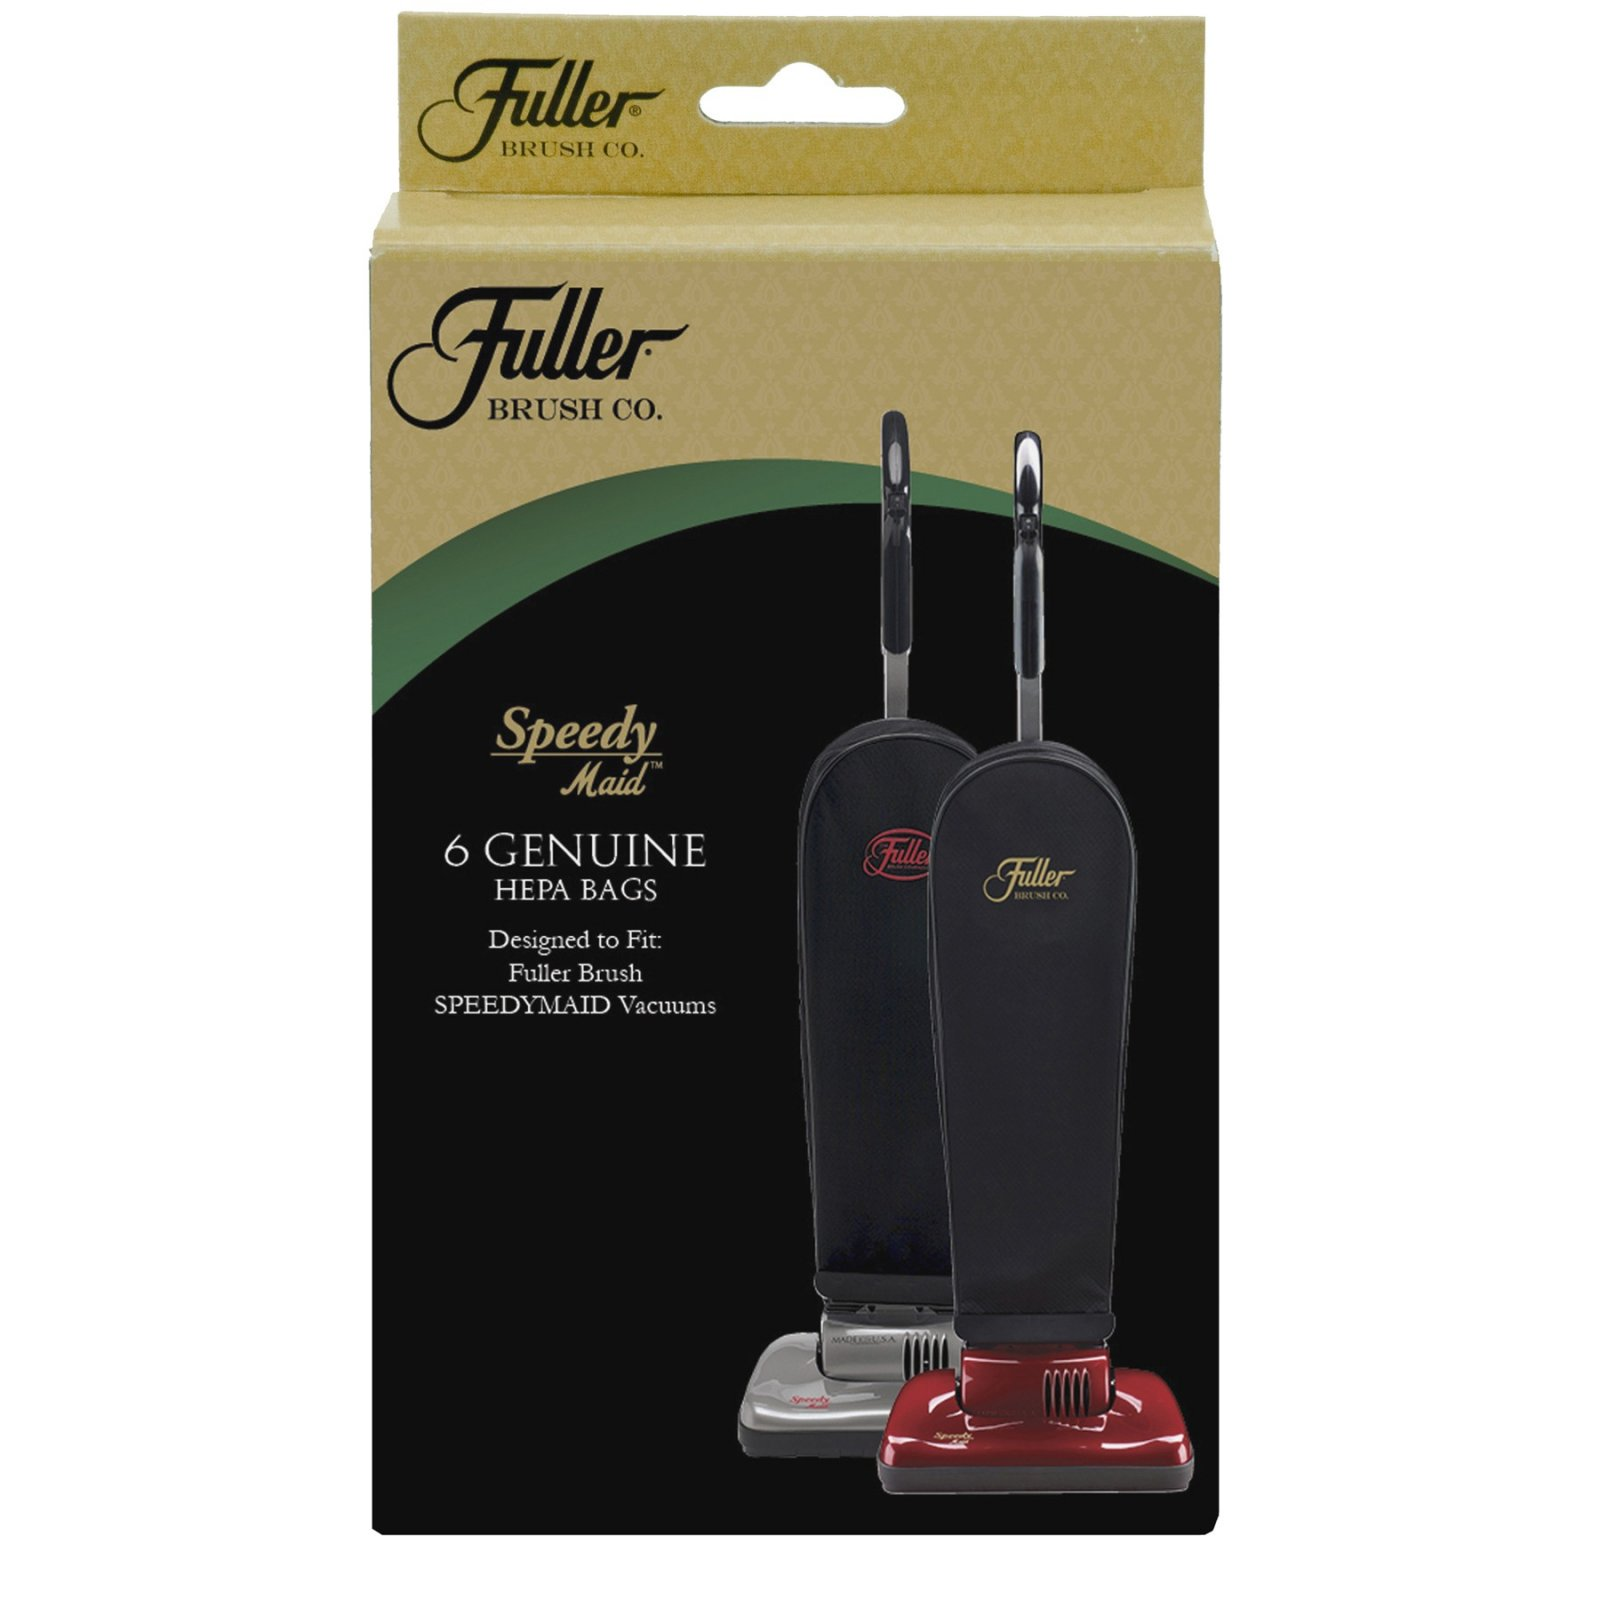 Fuller Brush Speedy Maid HEPA Vacuum Bags - 6 pack